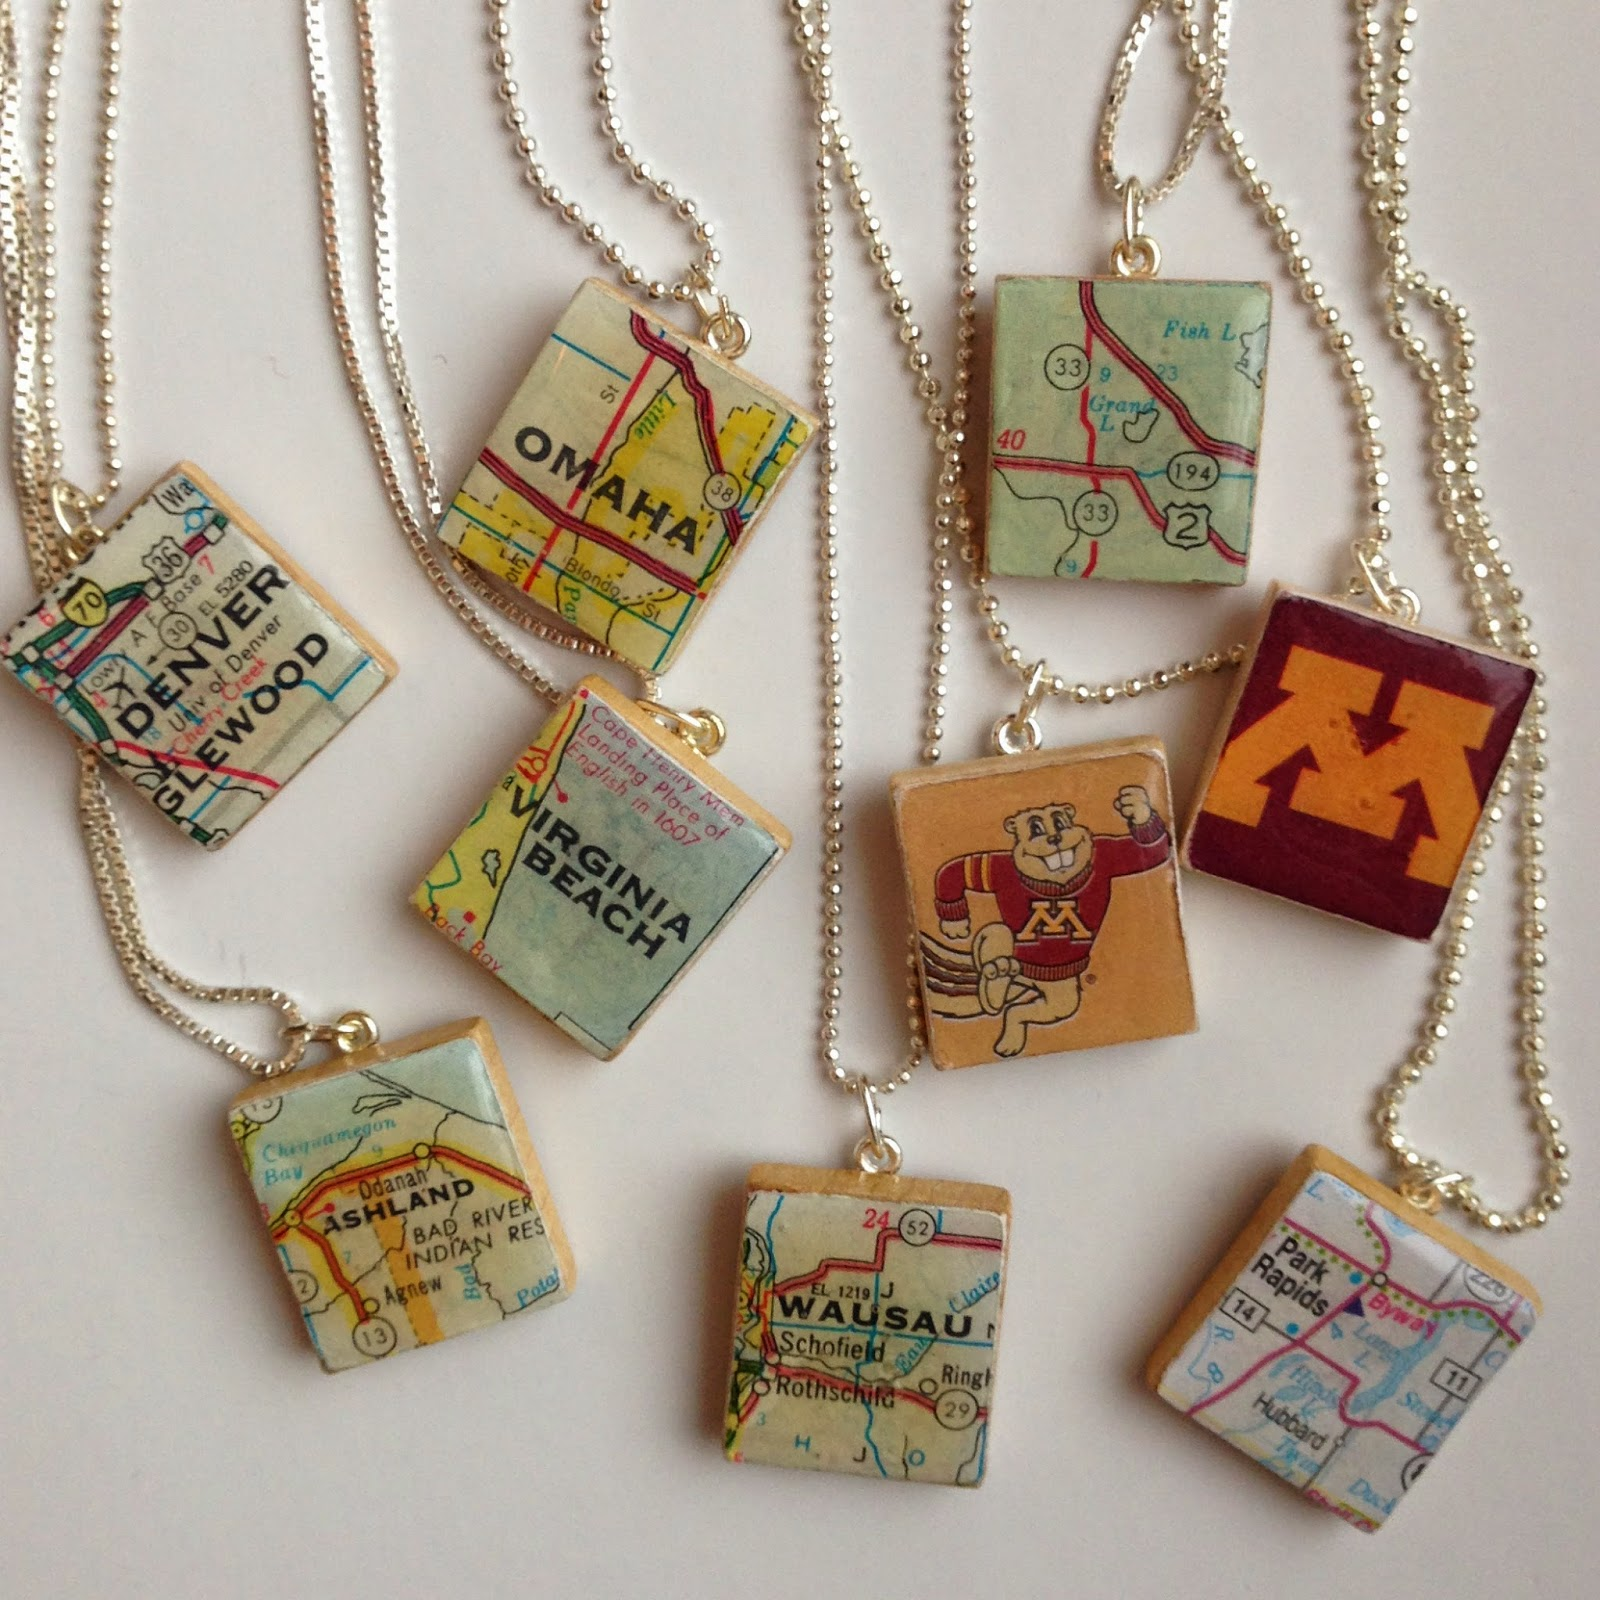 Our hobby house scrabble letter necklace pendants after seeing scrabble tile necklaces at many gift shops i wanted to try making some myself since i had leftover scrabble pieces from my scrabble wall art mozeypictures Images